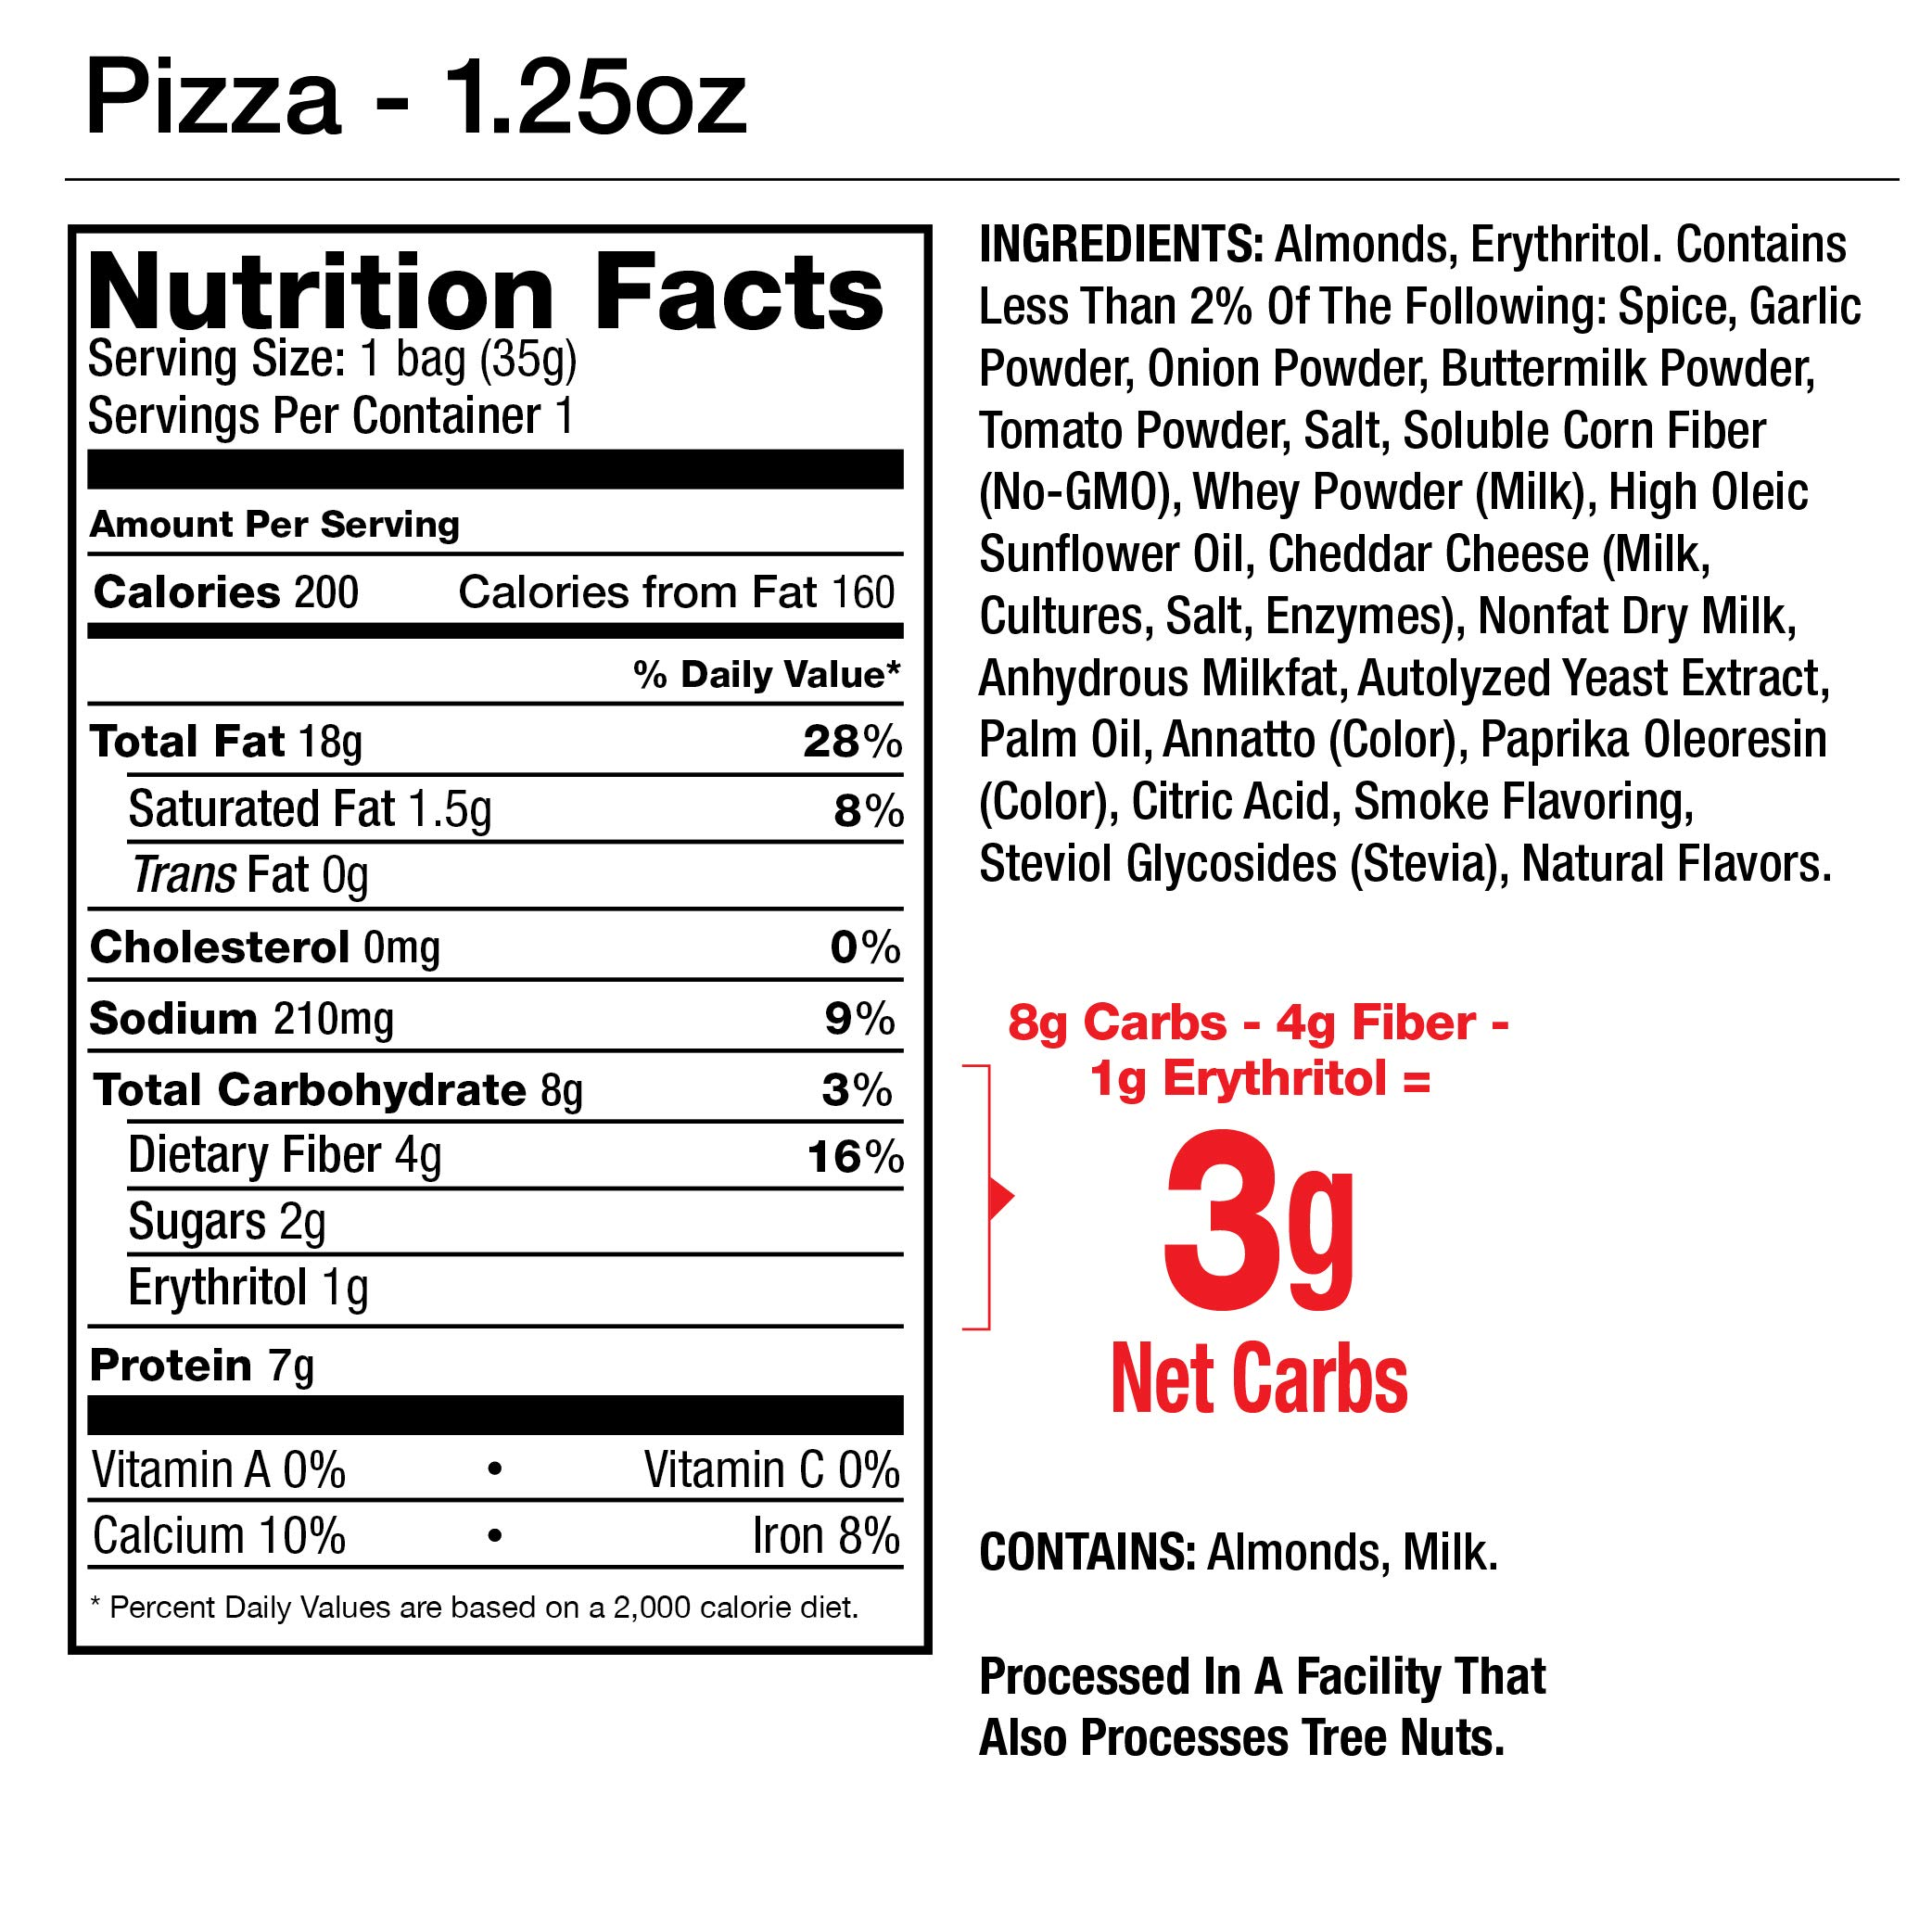 Legendary Foods Seasoned Almonds | Keto Friendly, Low Carb, Good Protein & Fat | Pizza Flavored (1.25oz, Pack of 12) by Legendary Foods (Image #3)